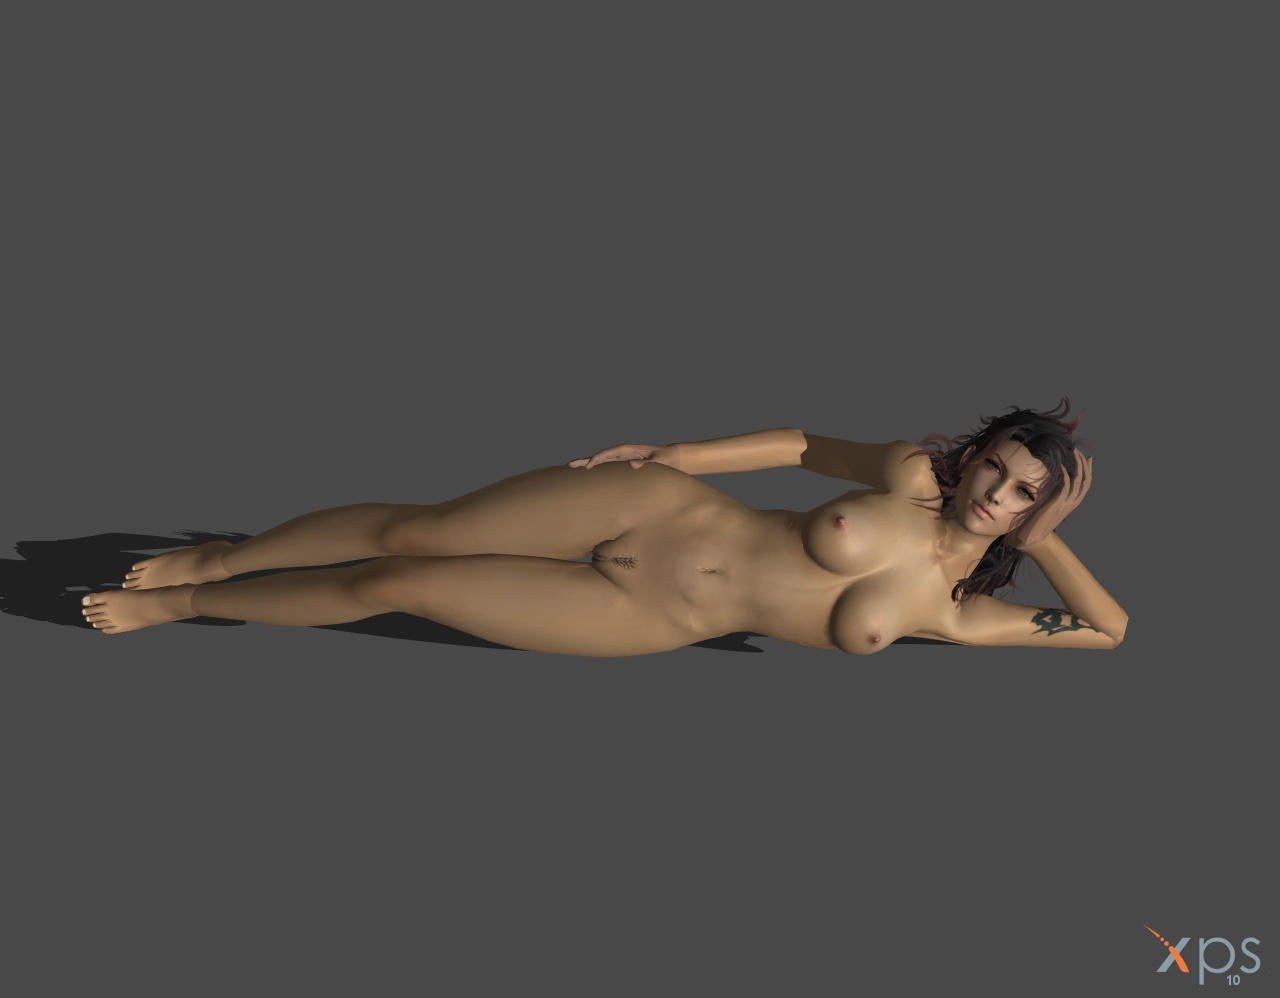 Nude final fantasy gmod models hardcore pictures